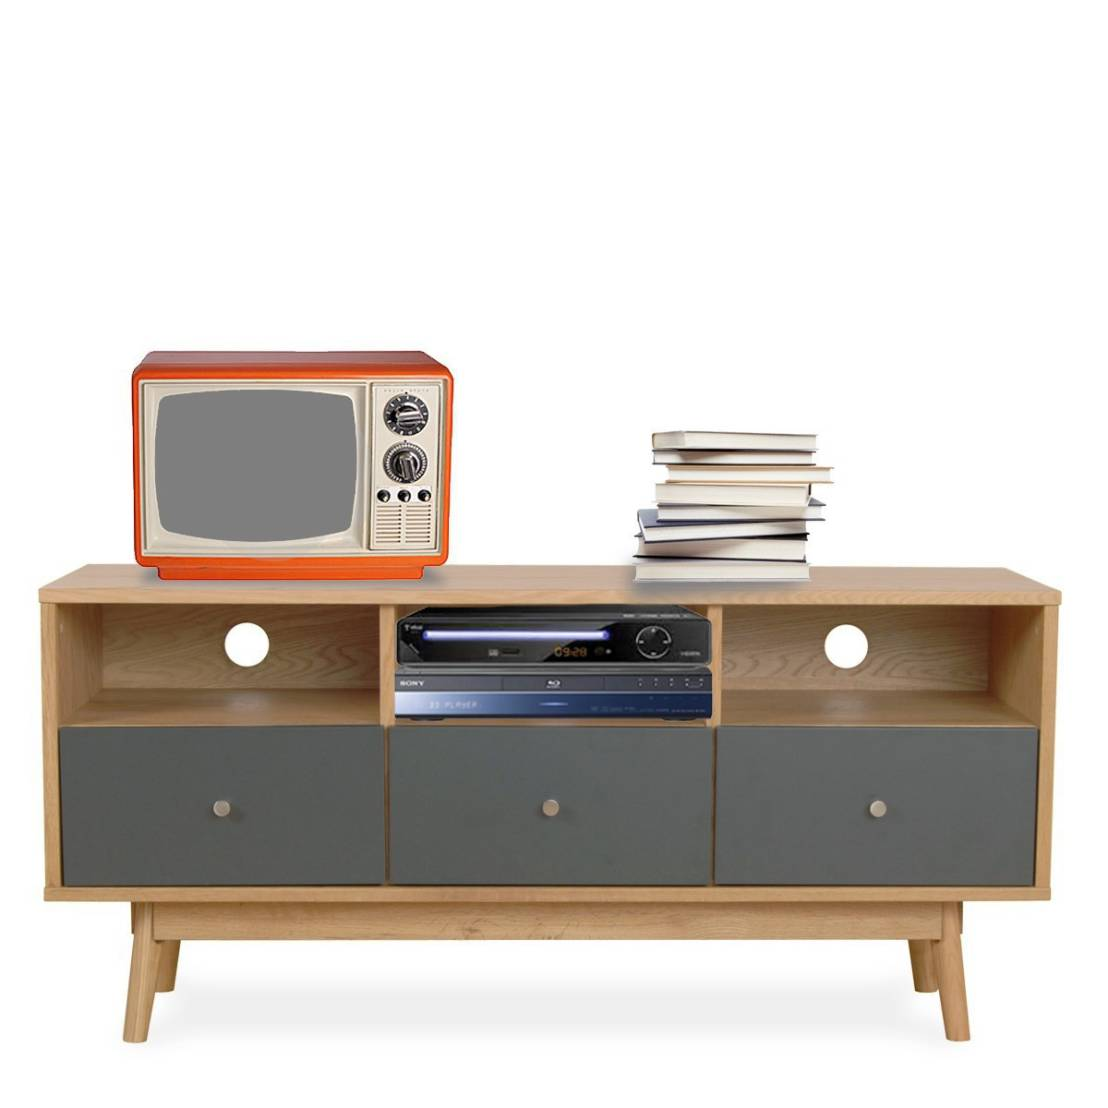 Meuble Tv Oslo Meubles De Salon Buffet Console Ou Bahut